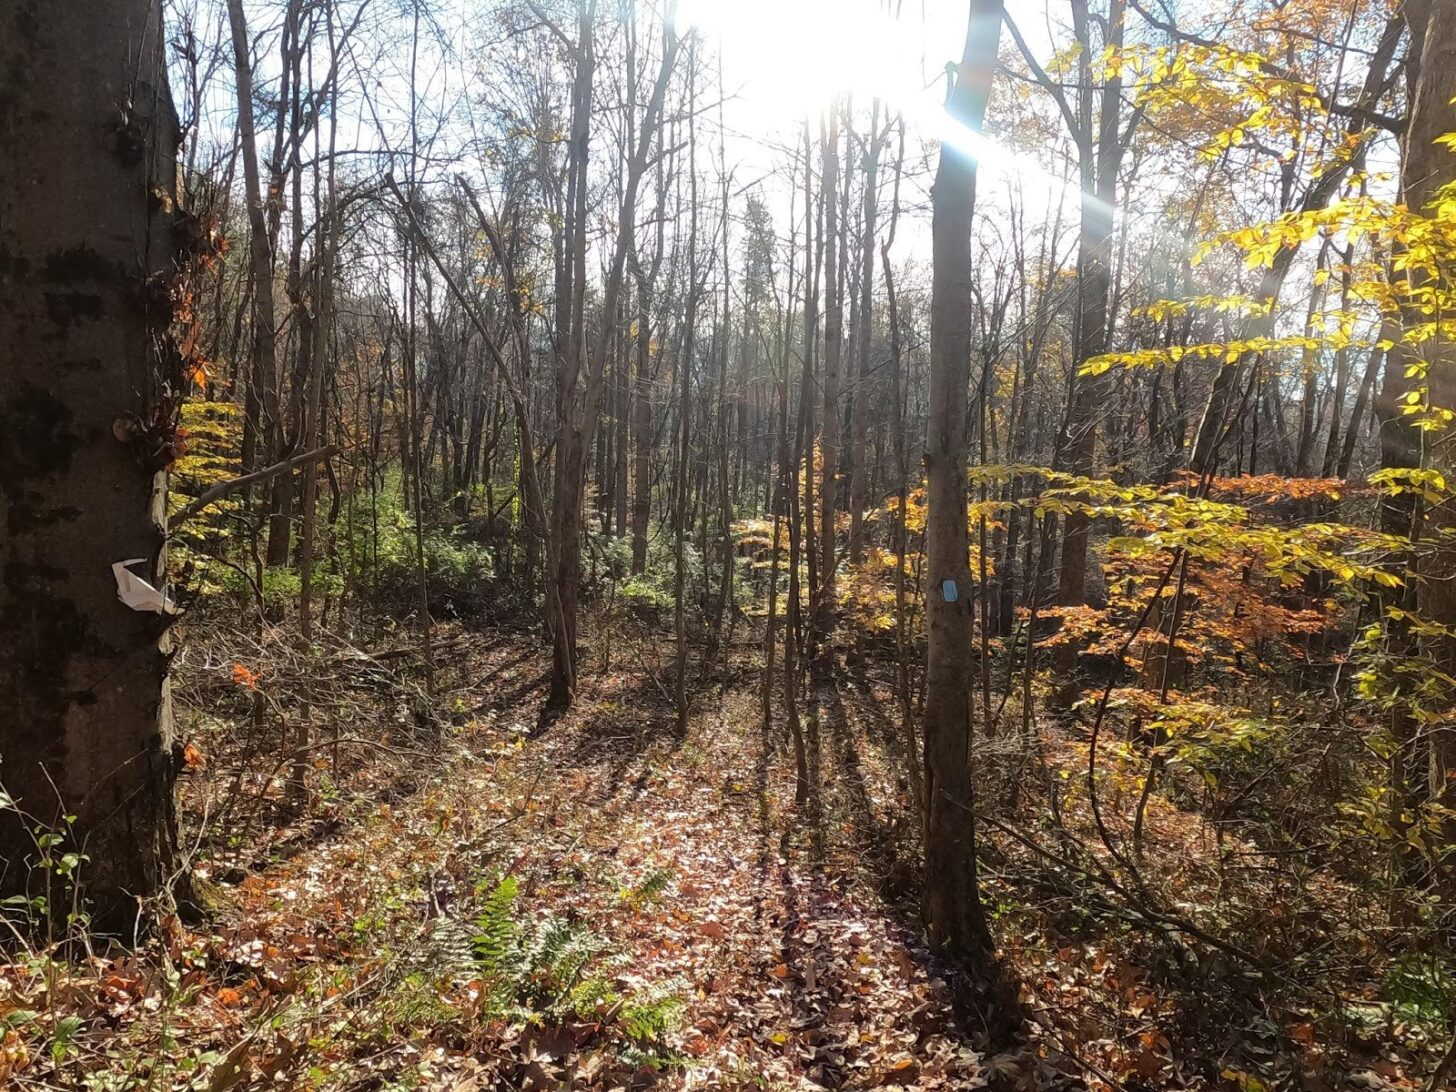 Late fall. A trail through the woods with a single blaze on a tree.